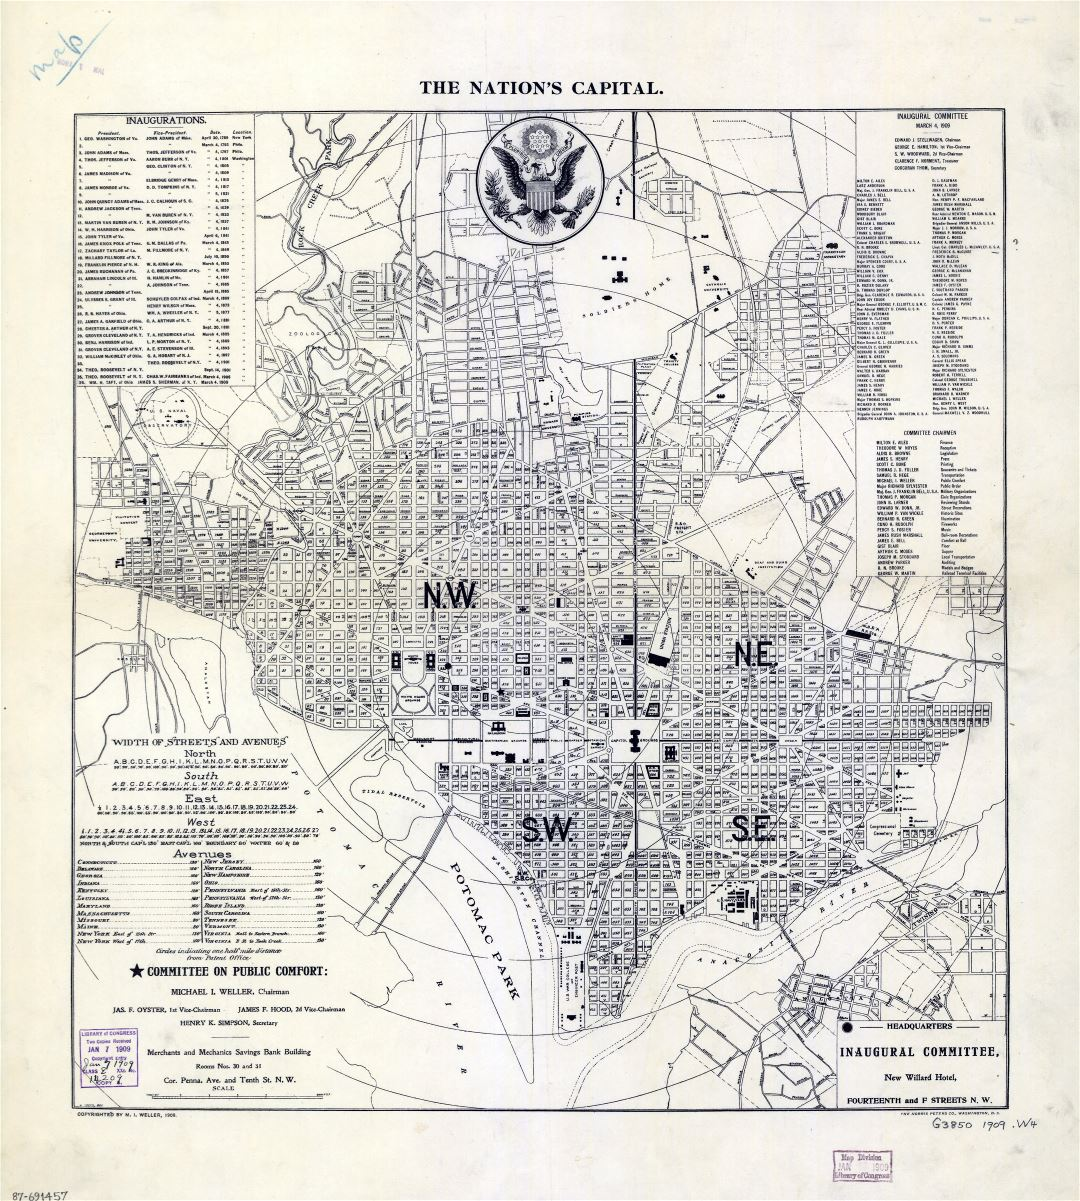 Large scale old map of the Nation's Capital Washington D.C. - 1909